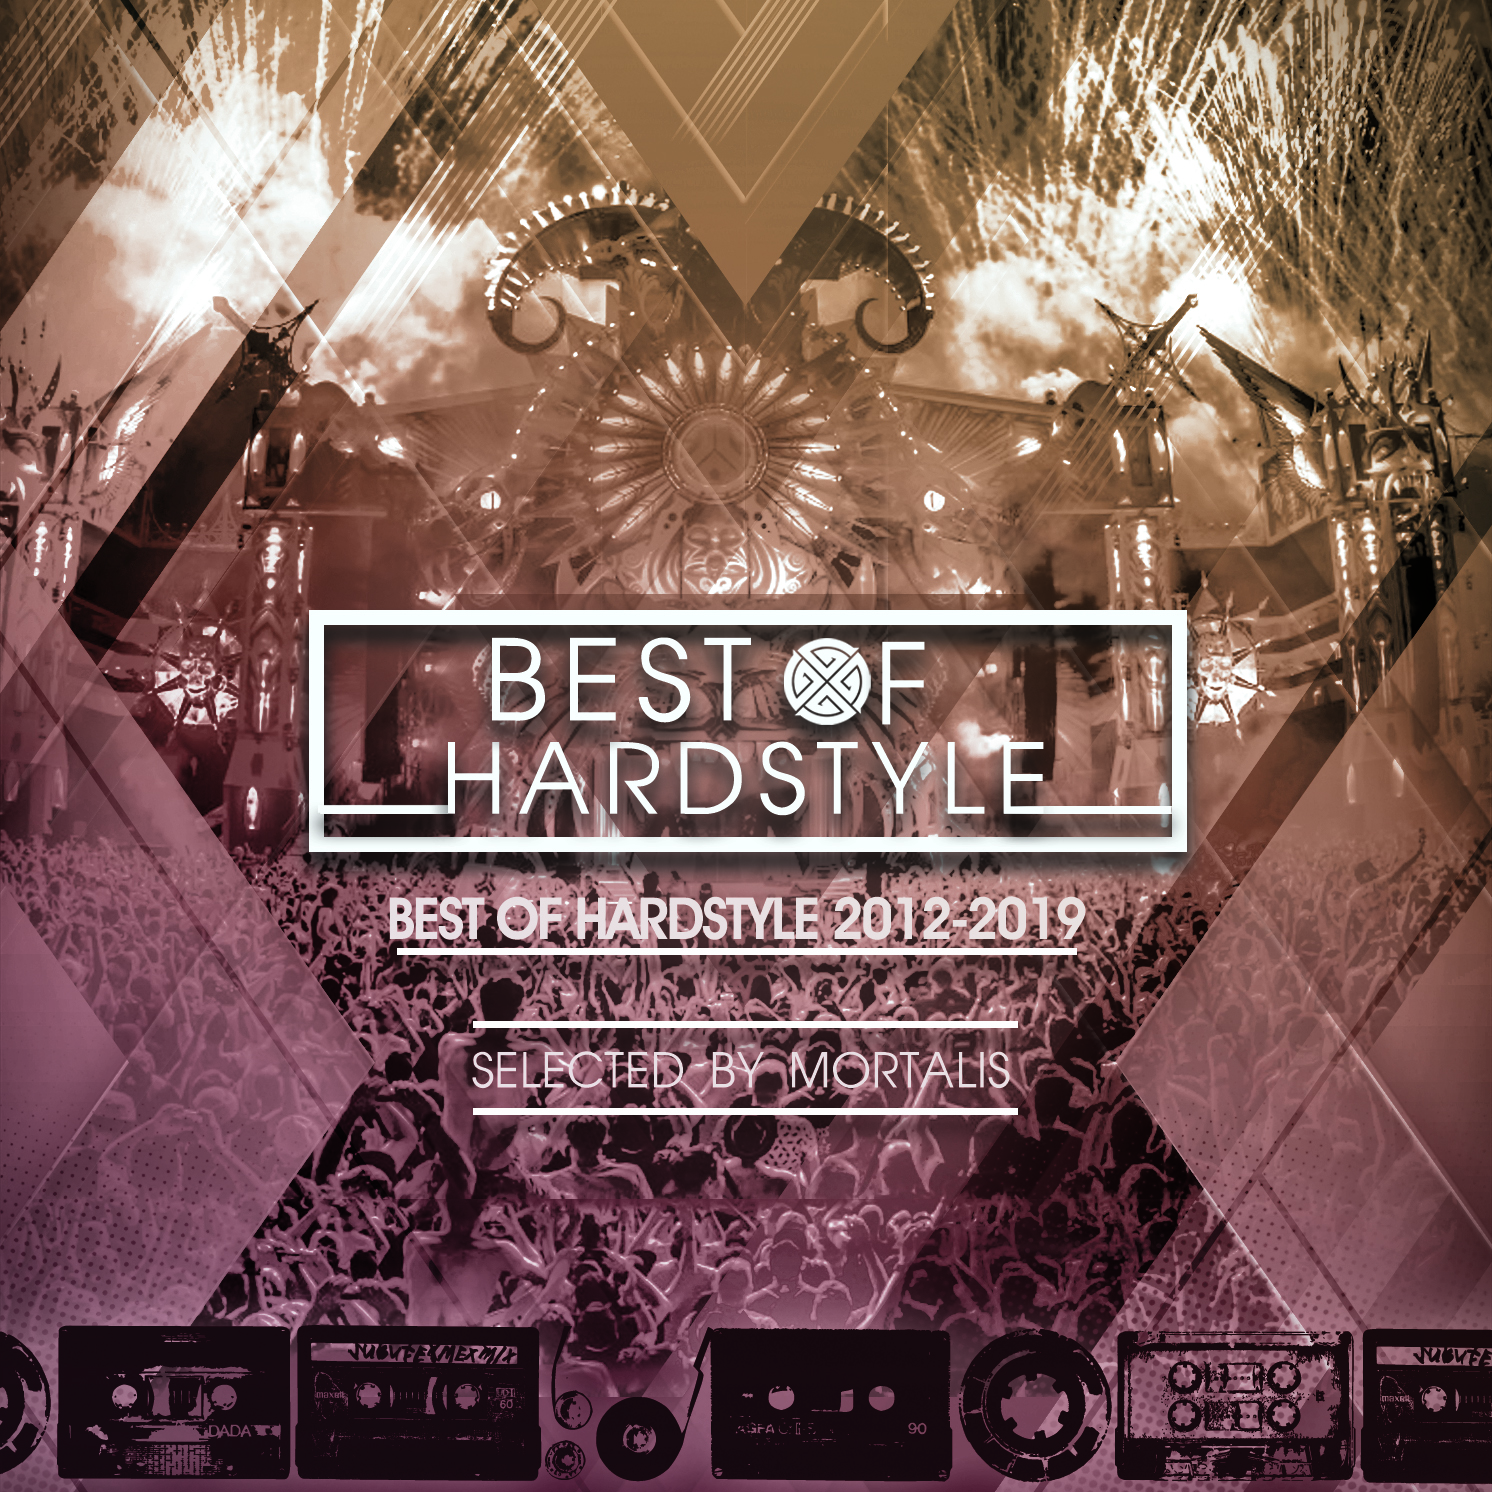 Best of Hardstyle